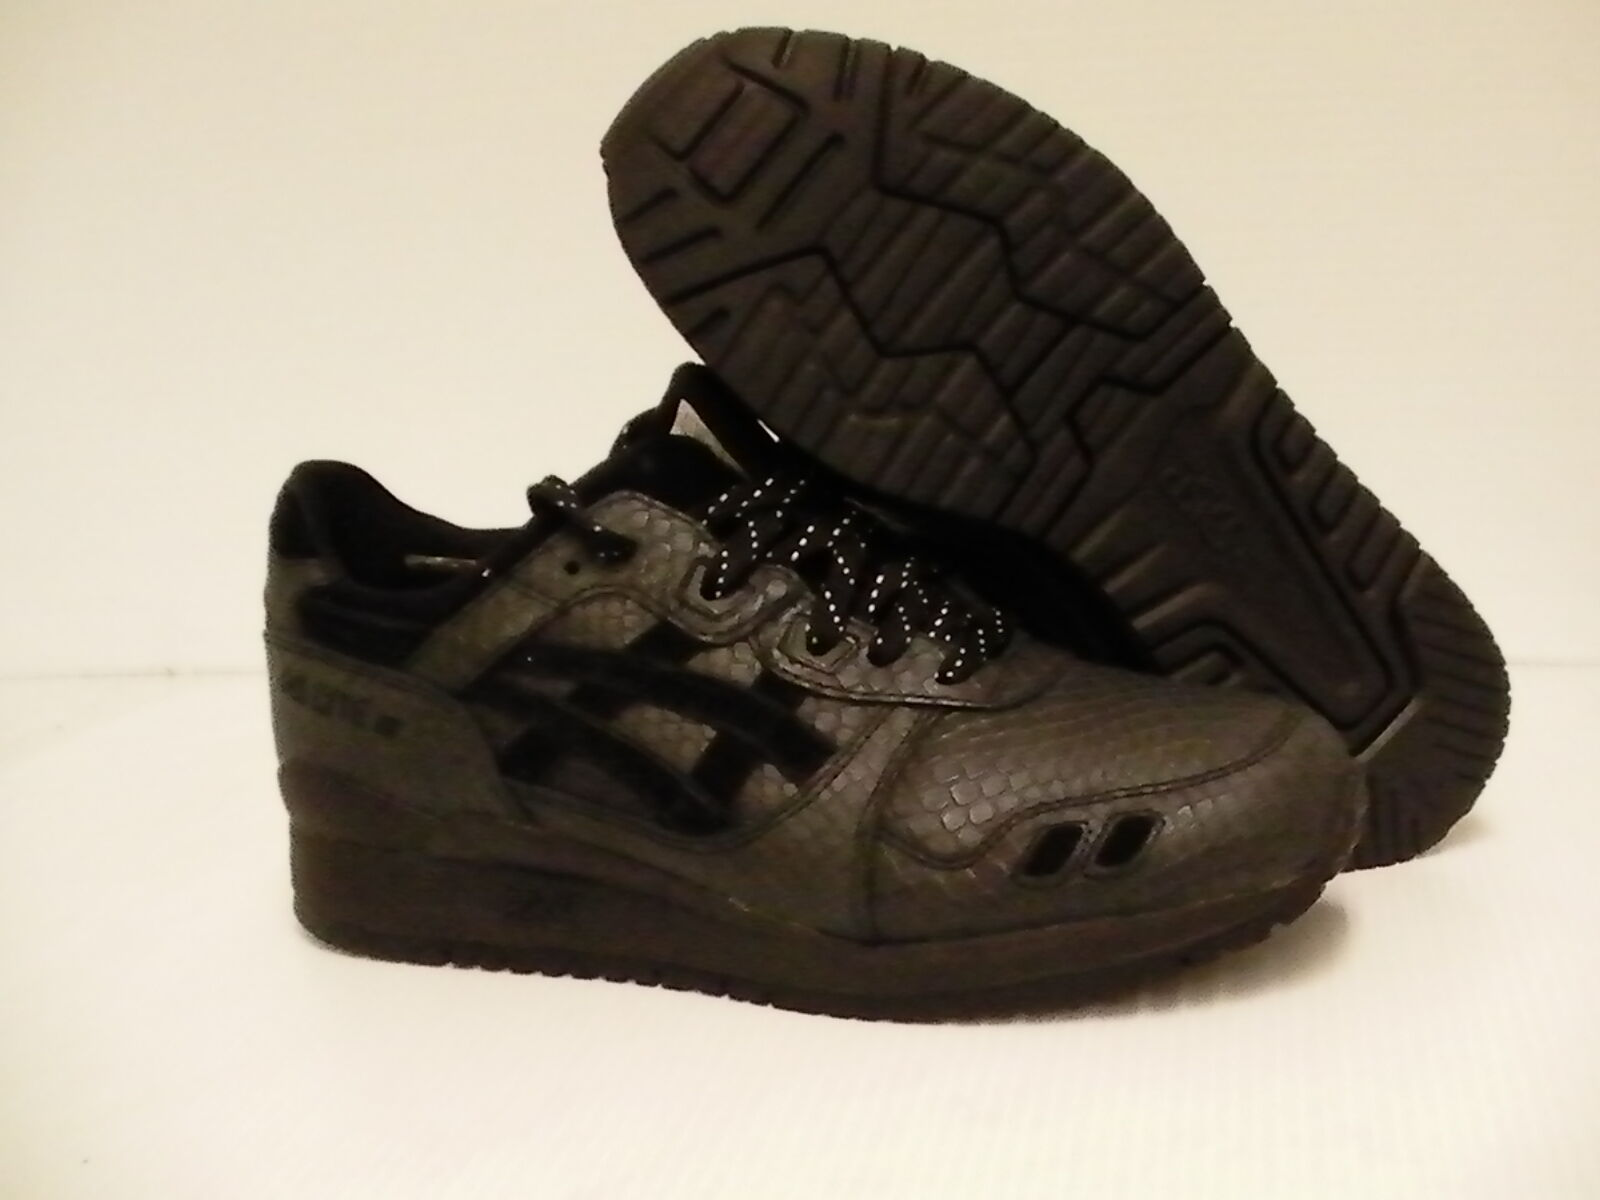 Asics running shoes Gel-Lyte III black leather size 7.5 us men